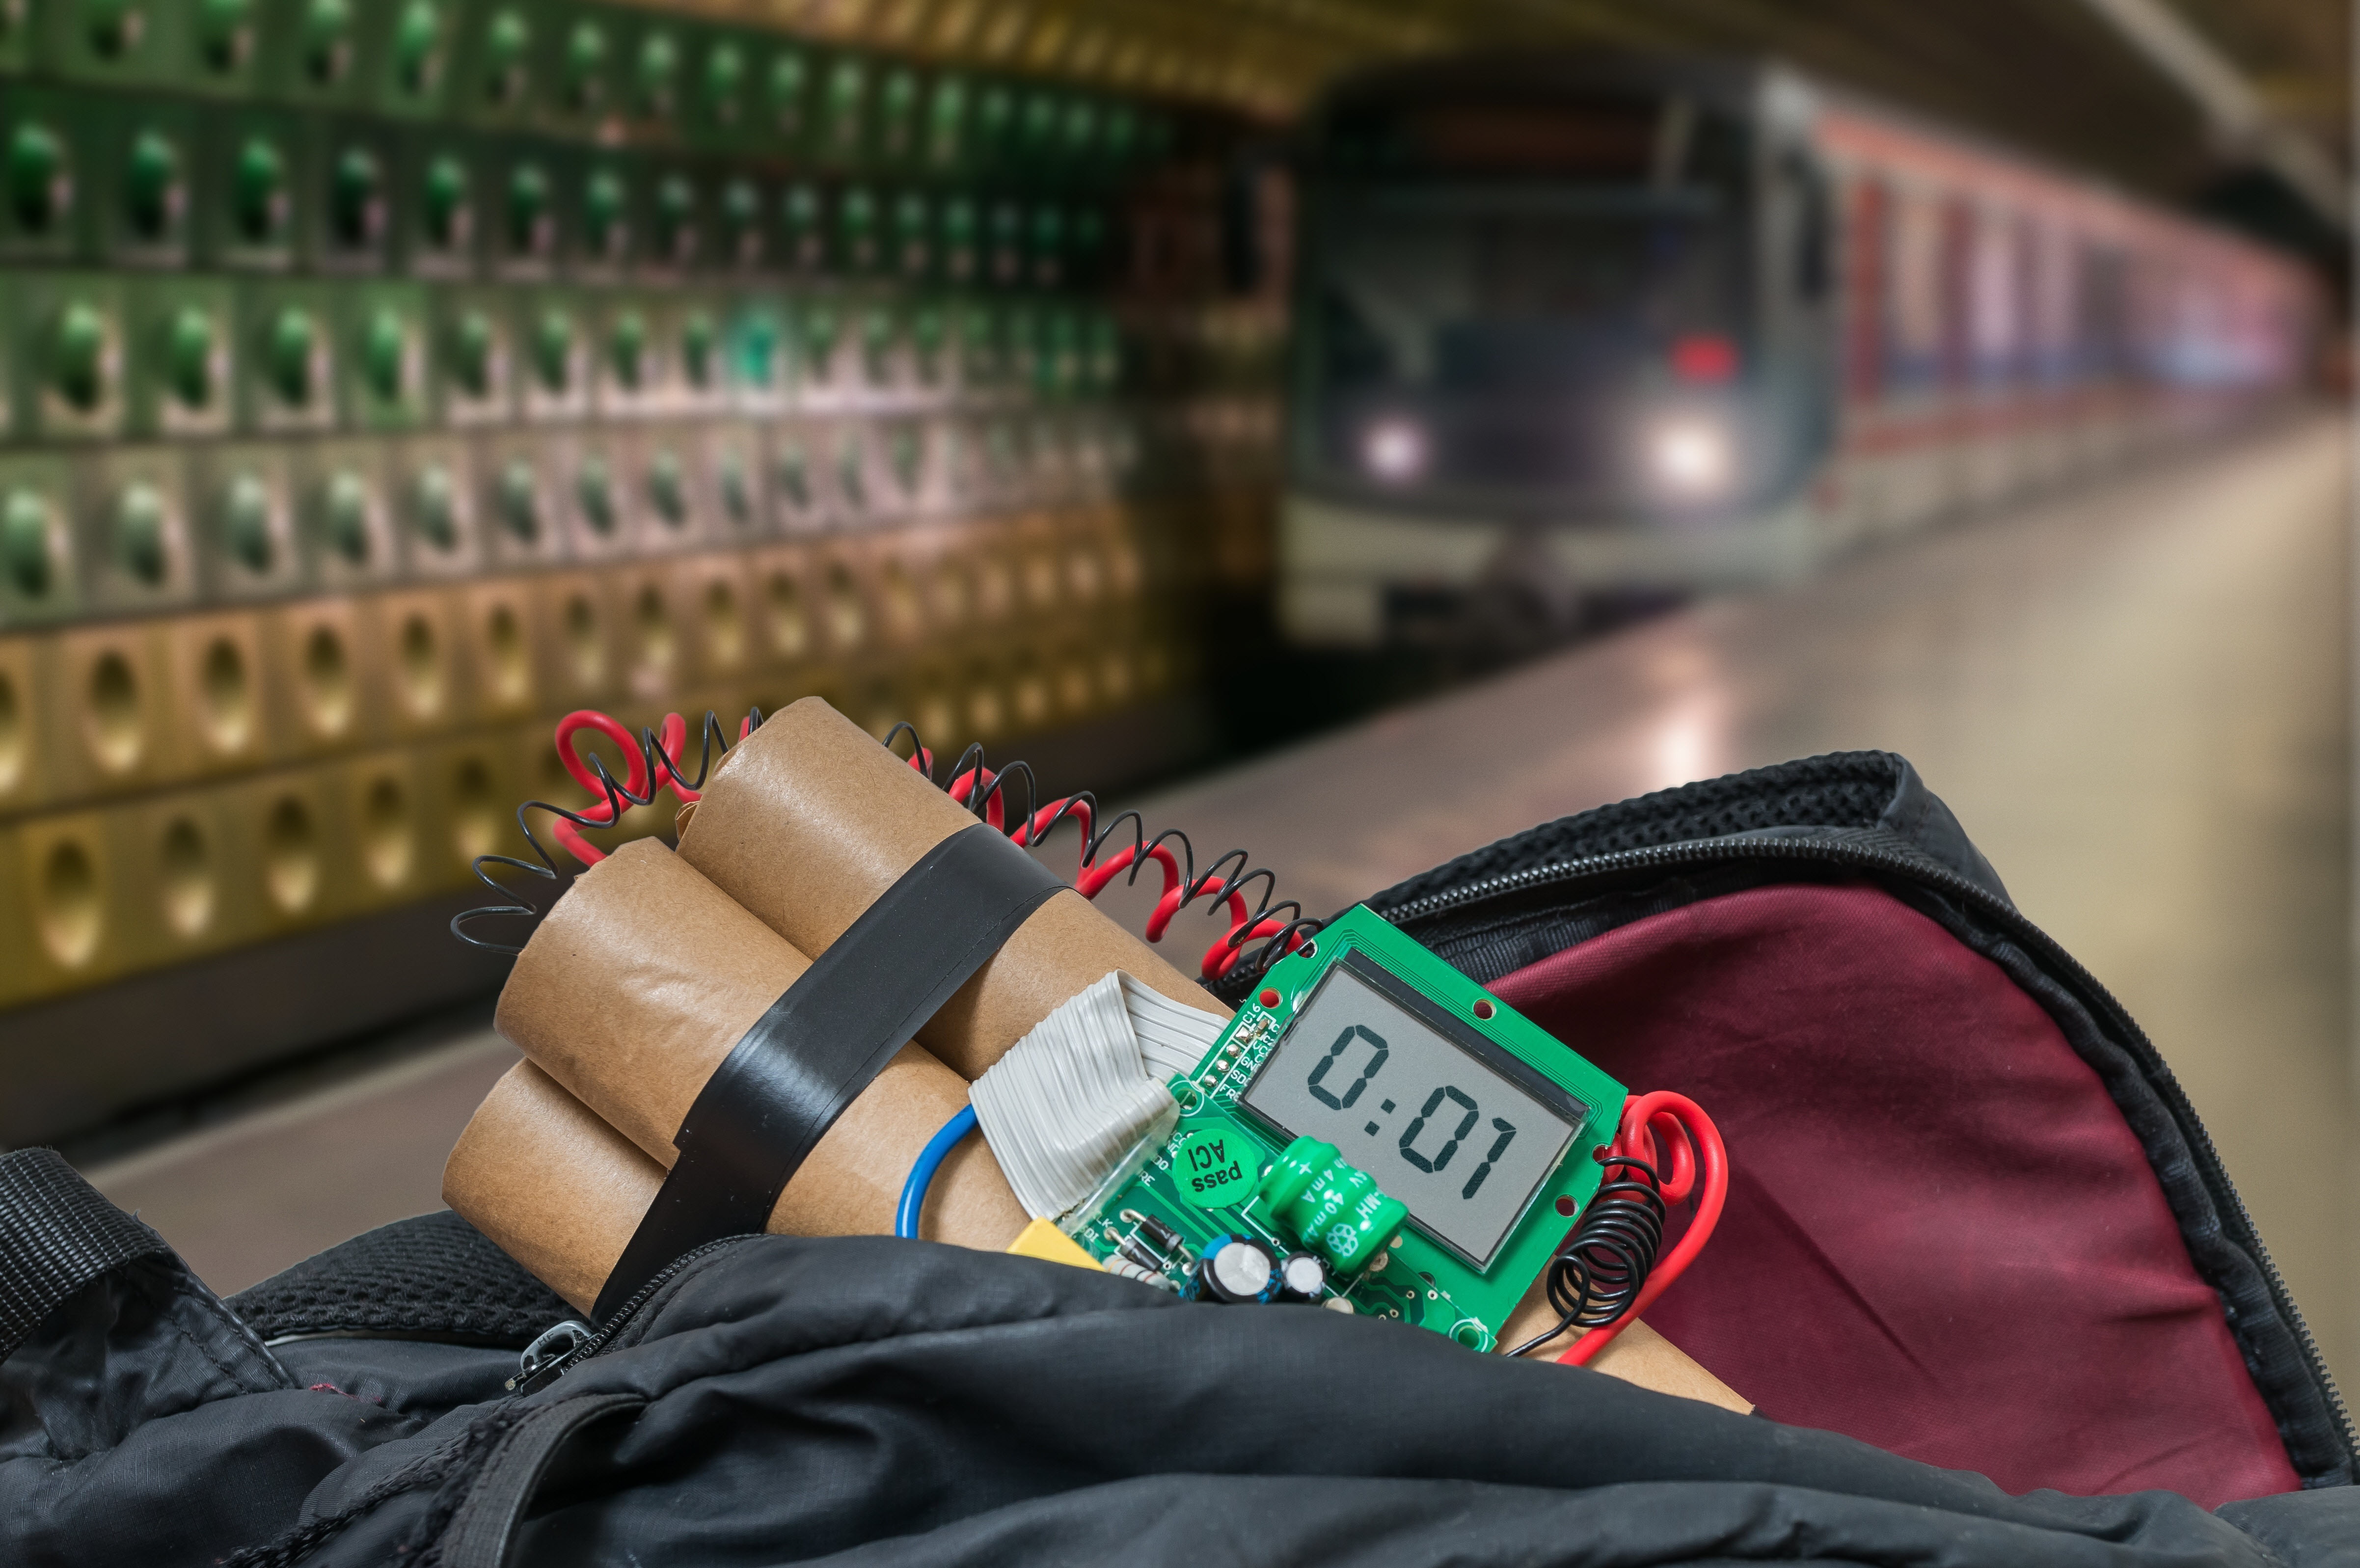 Image of a bomb on train tracks